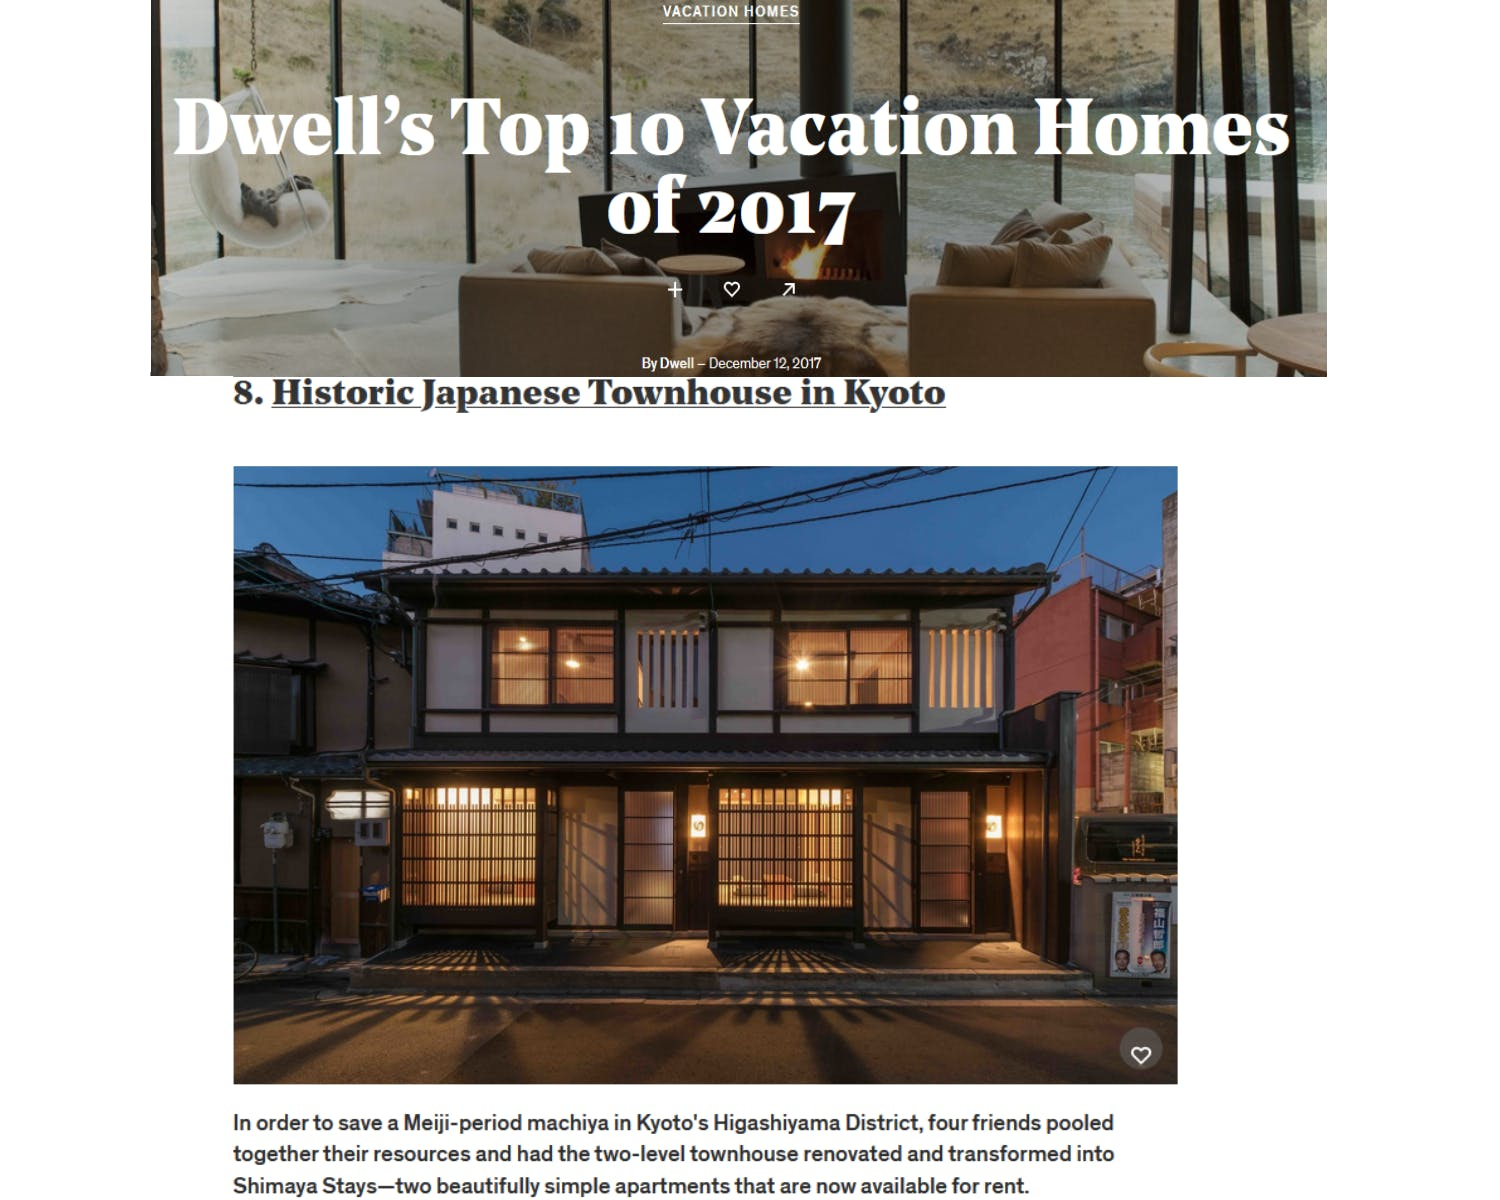 Kyoto BenTen Residences - Dwell's Top 10 Vacation Homes